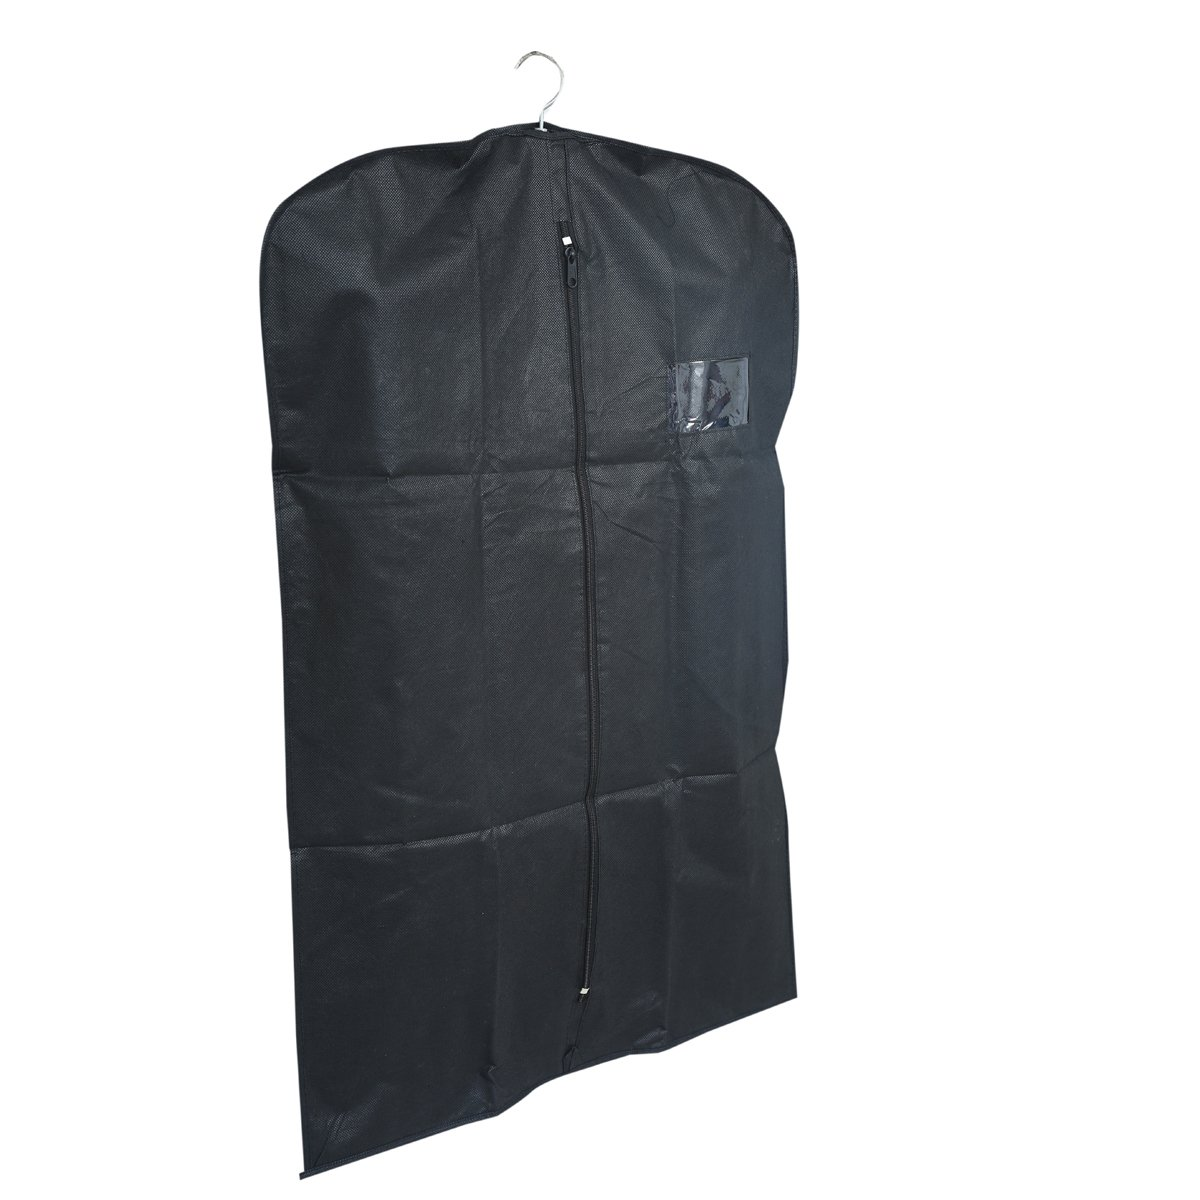 23aee31a57d3 Kuber Industries™ Men s Coat Blazer Cover Foldover Breathable Garment Bag  Suit Cover Set of 6 Pcs- Black  Amazon.in  Home   Kitchen